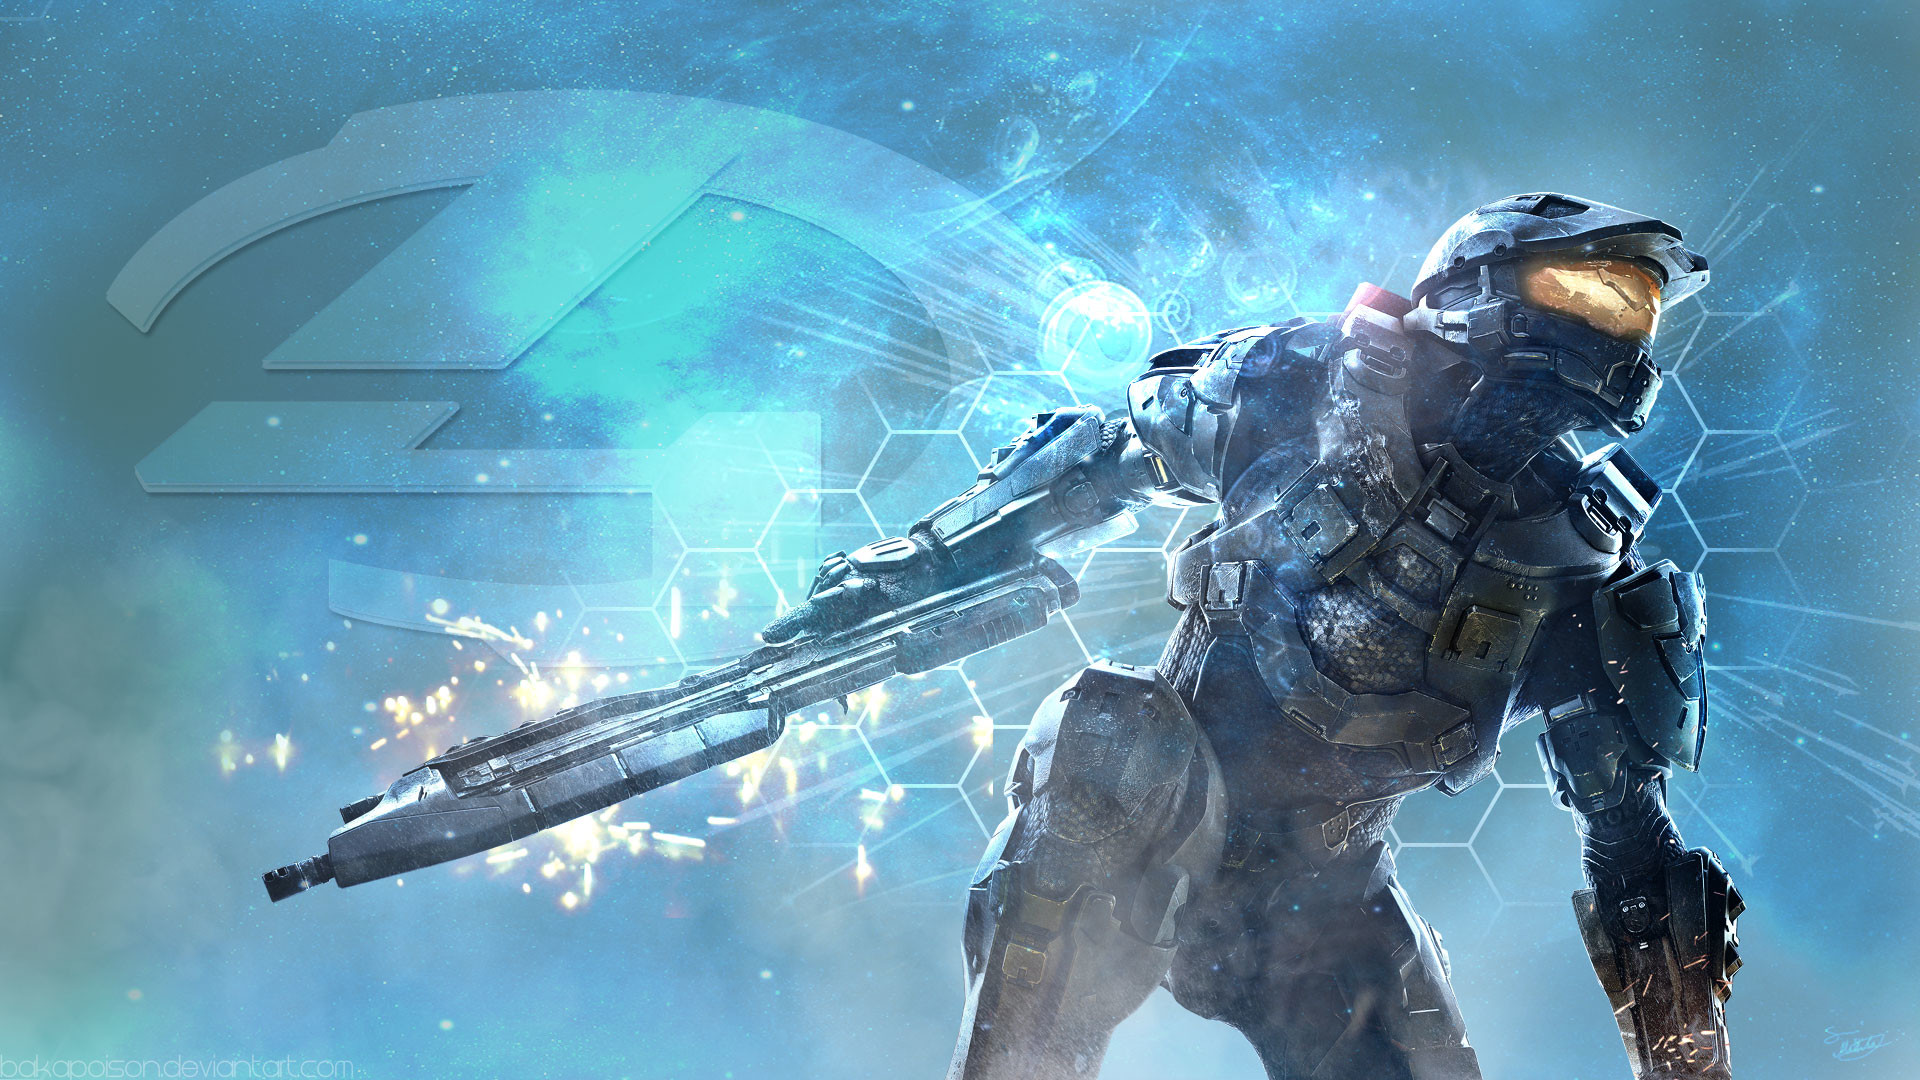 Halo 4 Wallpaper 1920x1080 Wallpapertag